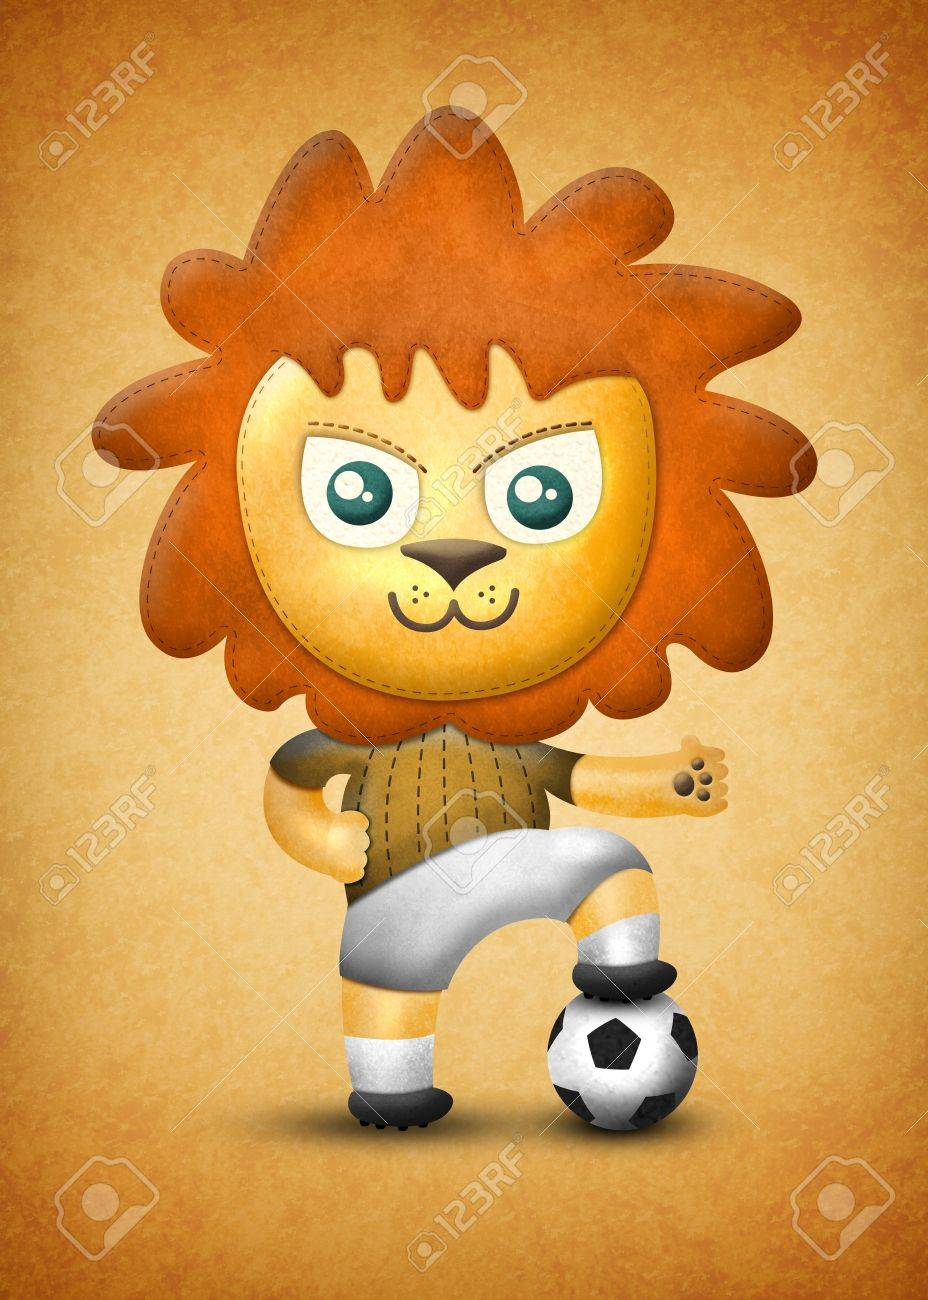 Cartoon cute lion, paper and fabric textures on texture background Stock Photo - 17992344